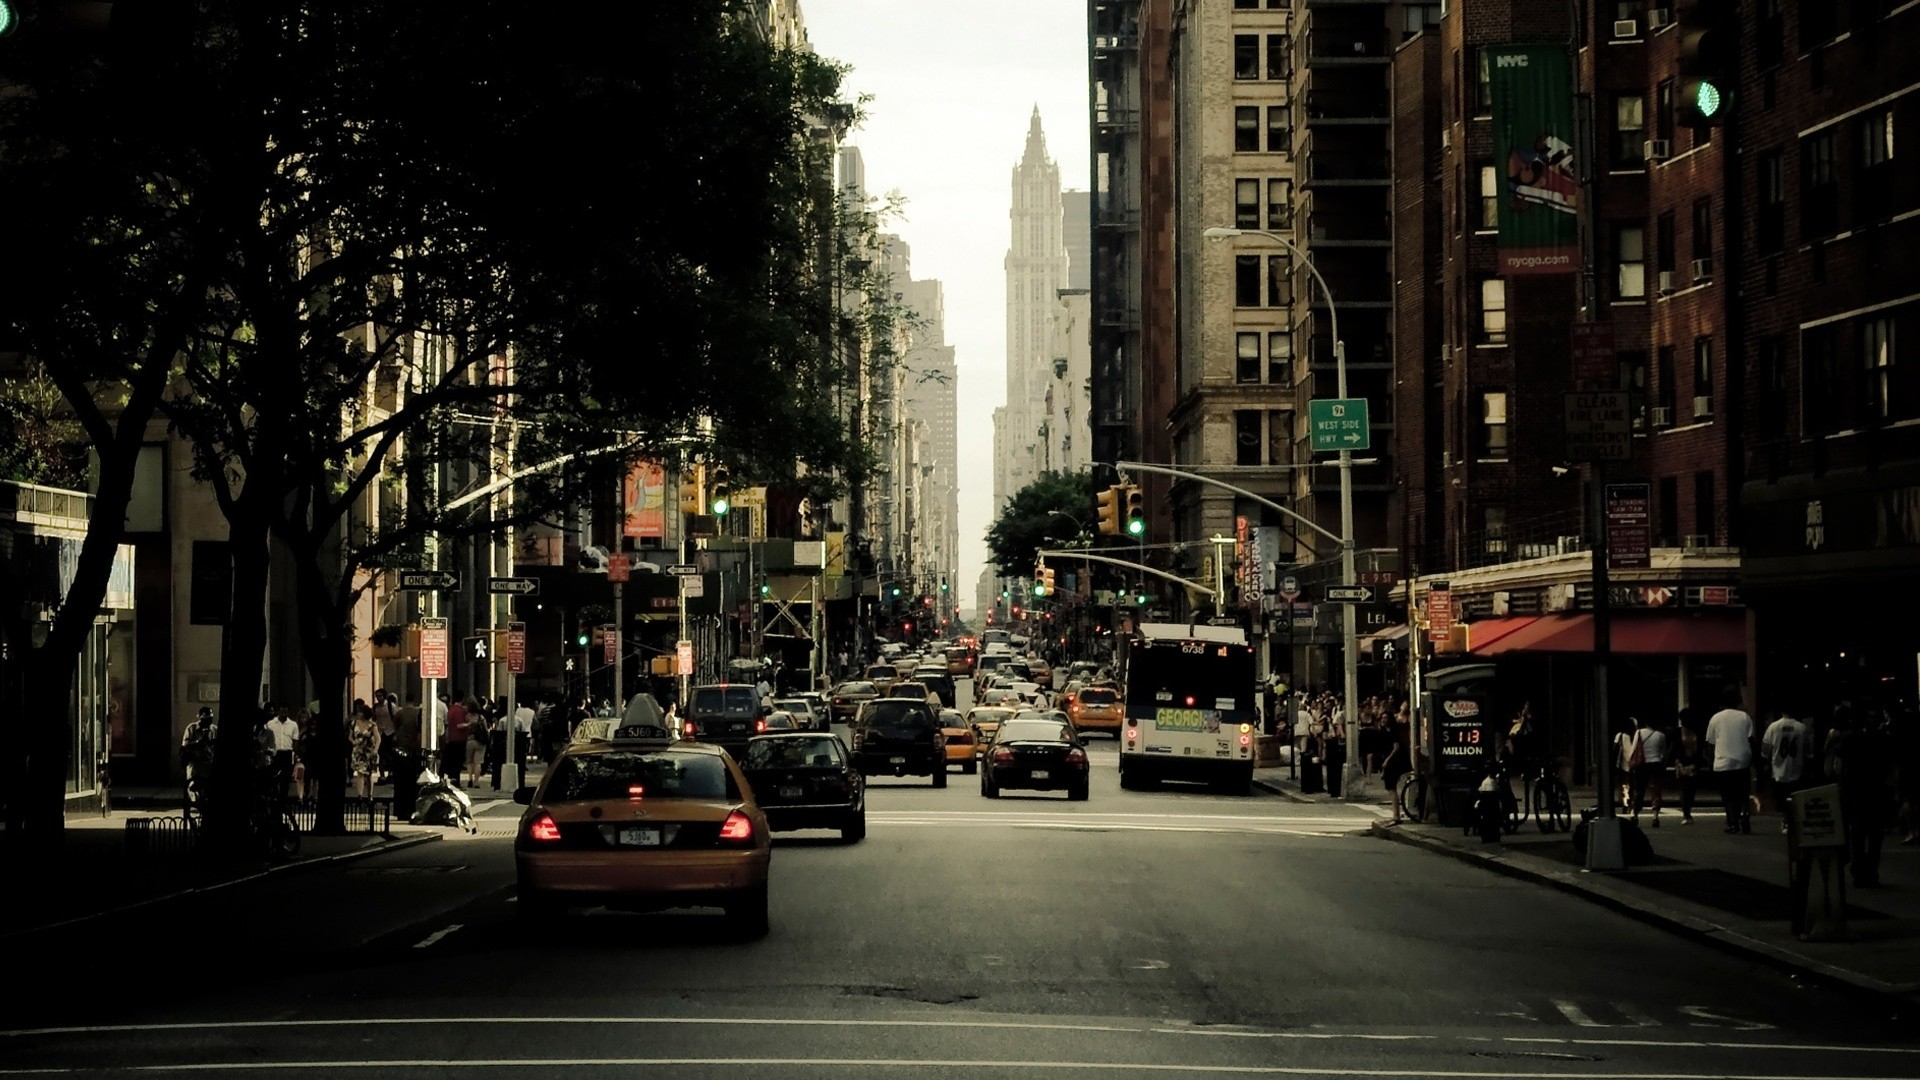 New York City Street Wallpaper 66 Images